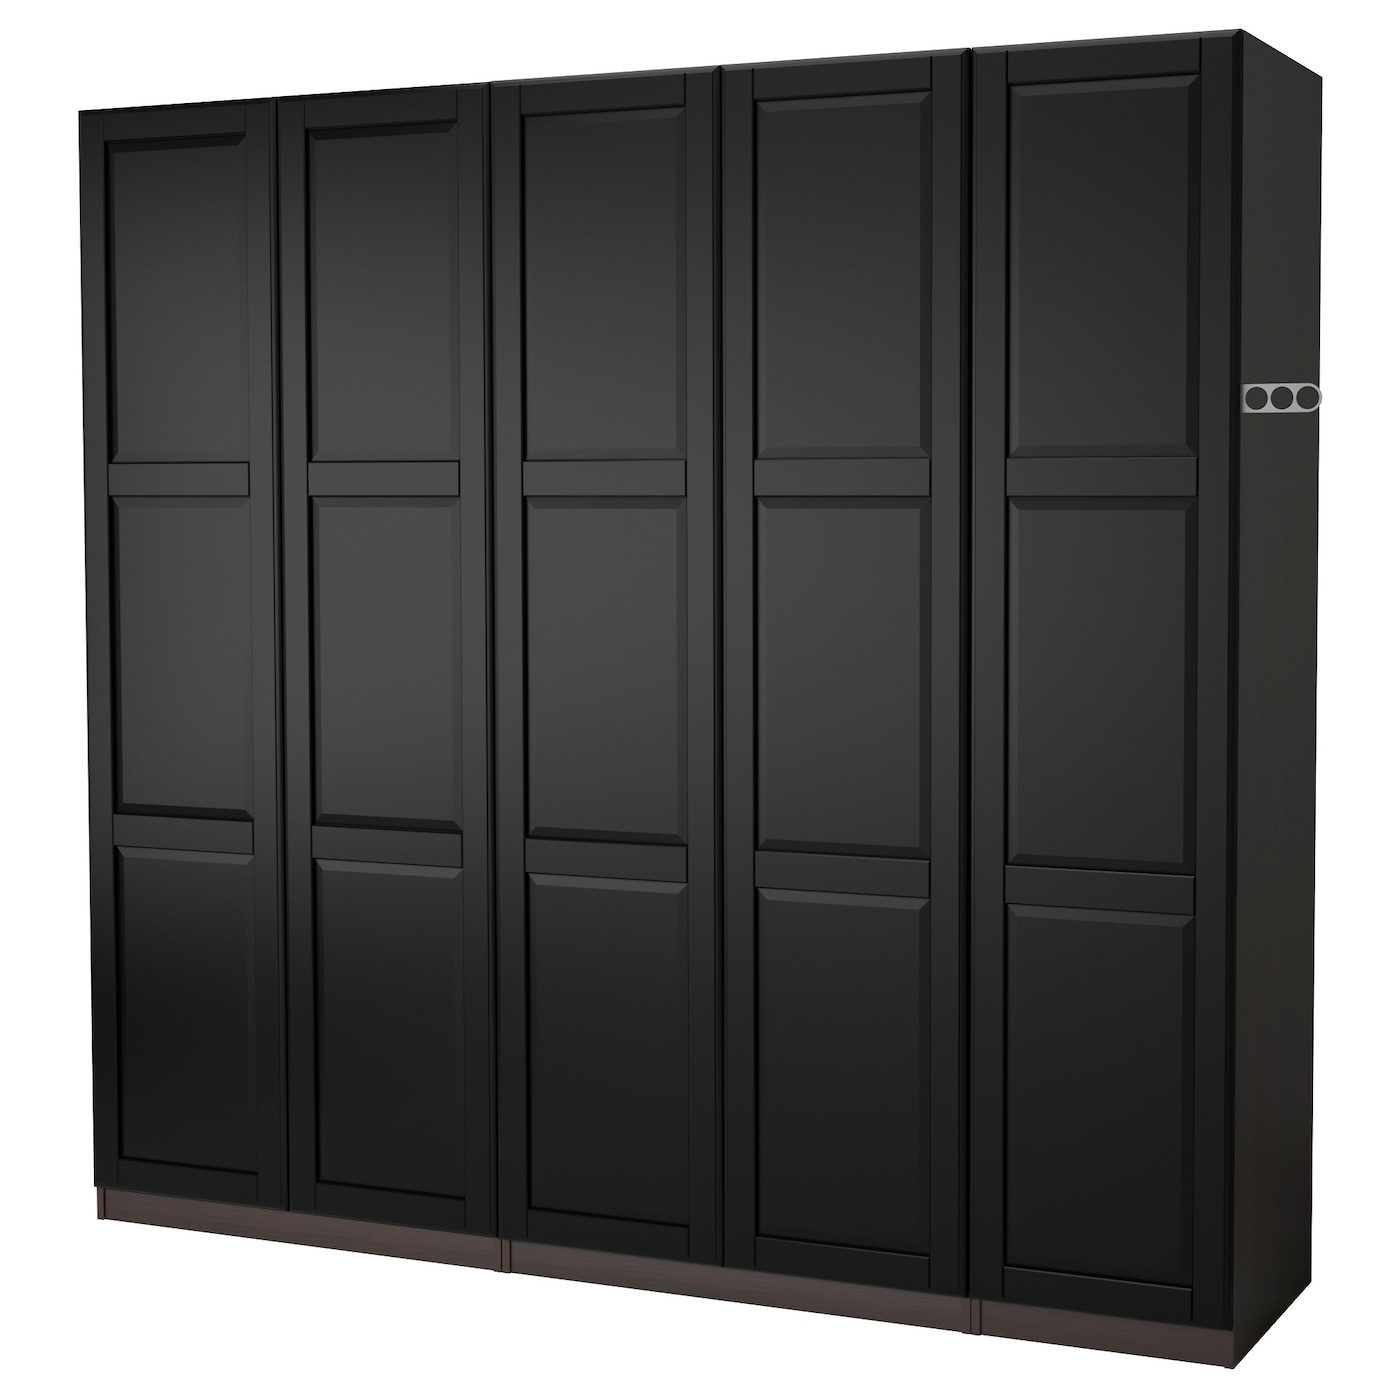 Pax wardrobe black brown undredal black 250x60x236 cm ikea - Black days ikea ...